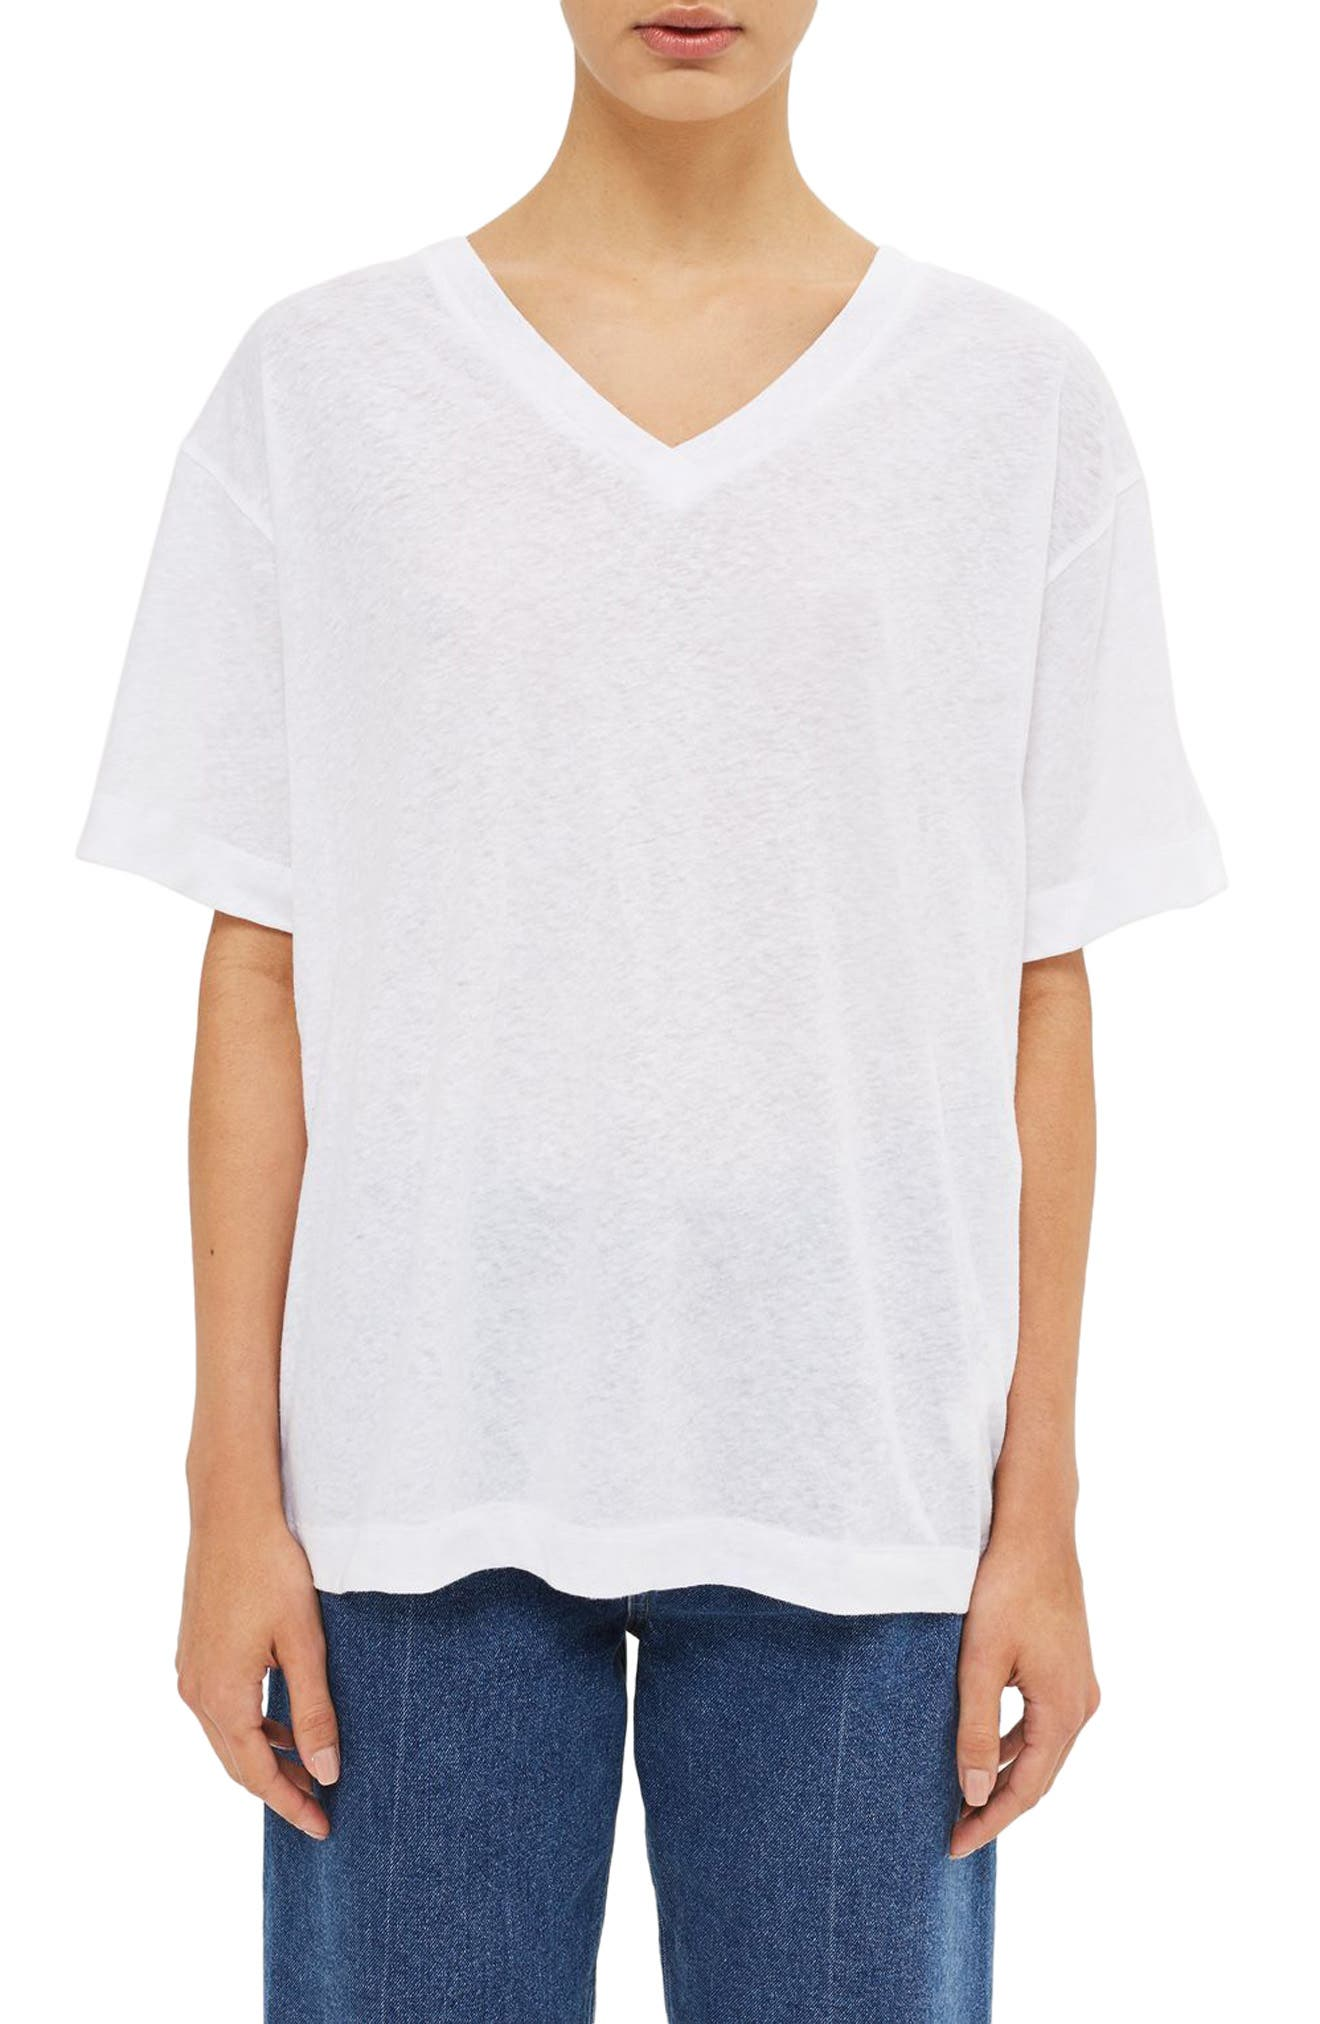 Topshop Boutique Relaxed V-Neck Tee